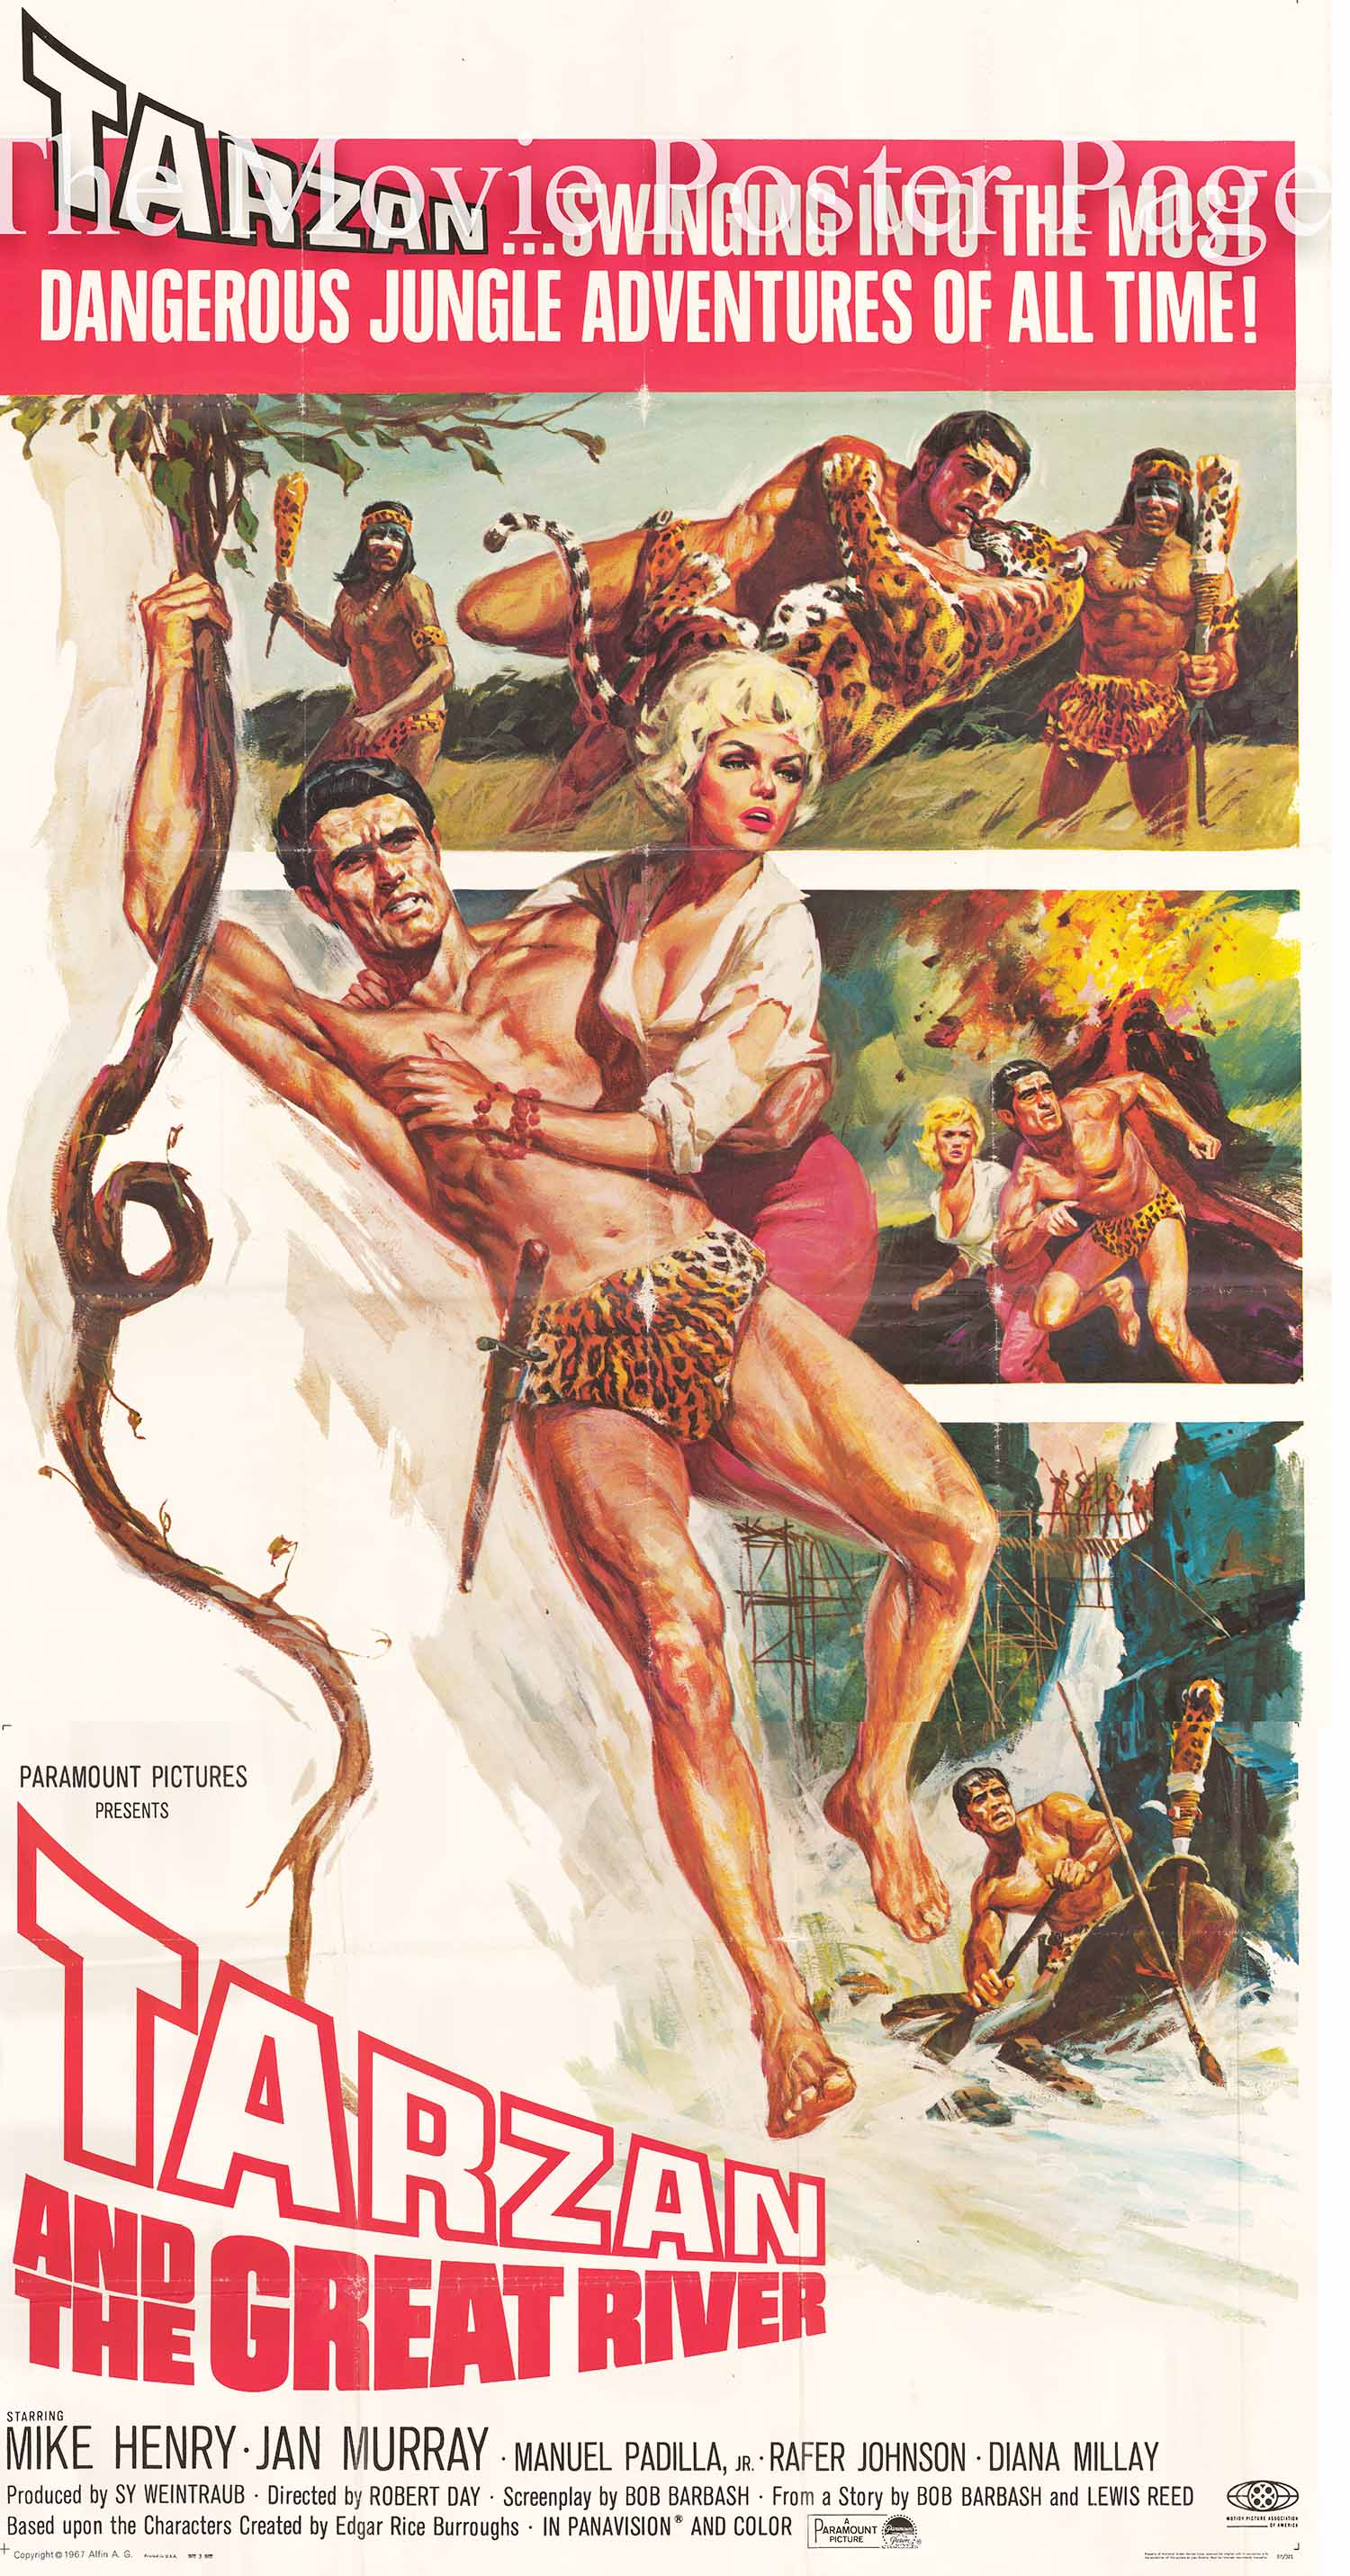 Pictured is a US three-sheet promotional poster for the 1967 Robert Day film Tarzan and the Great River starring Mike Henry.